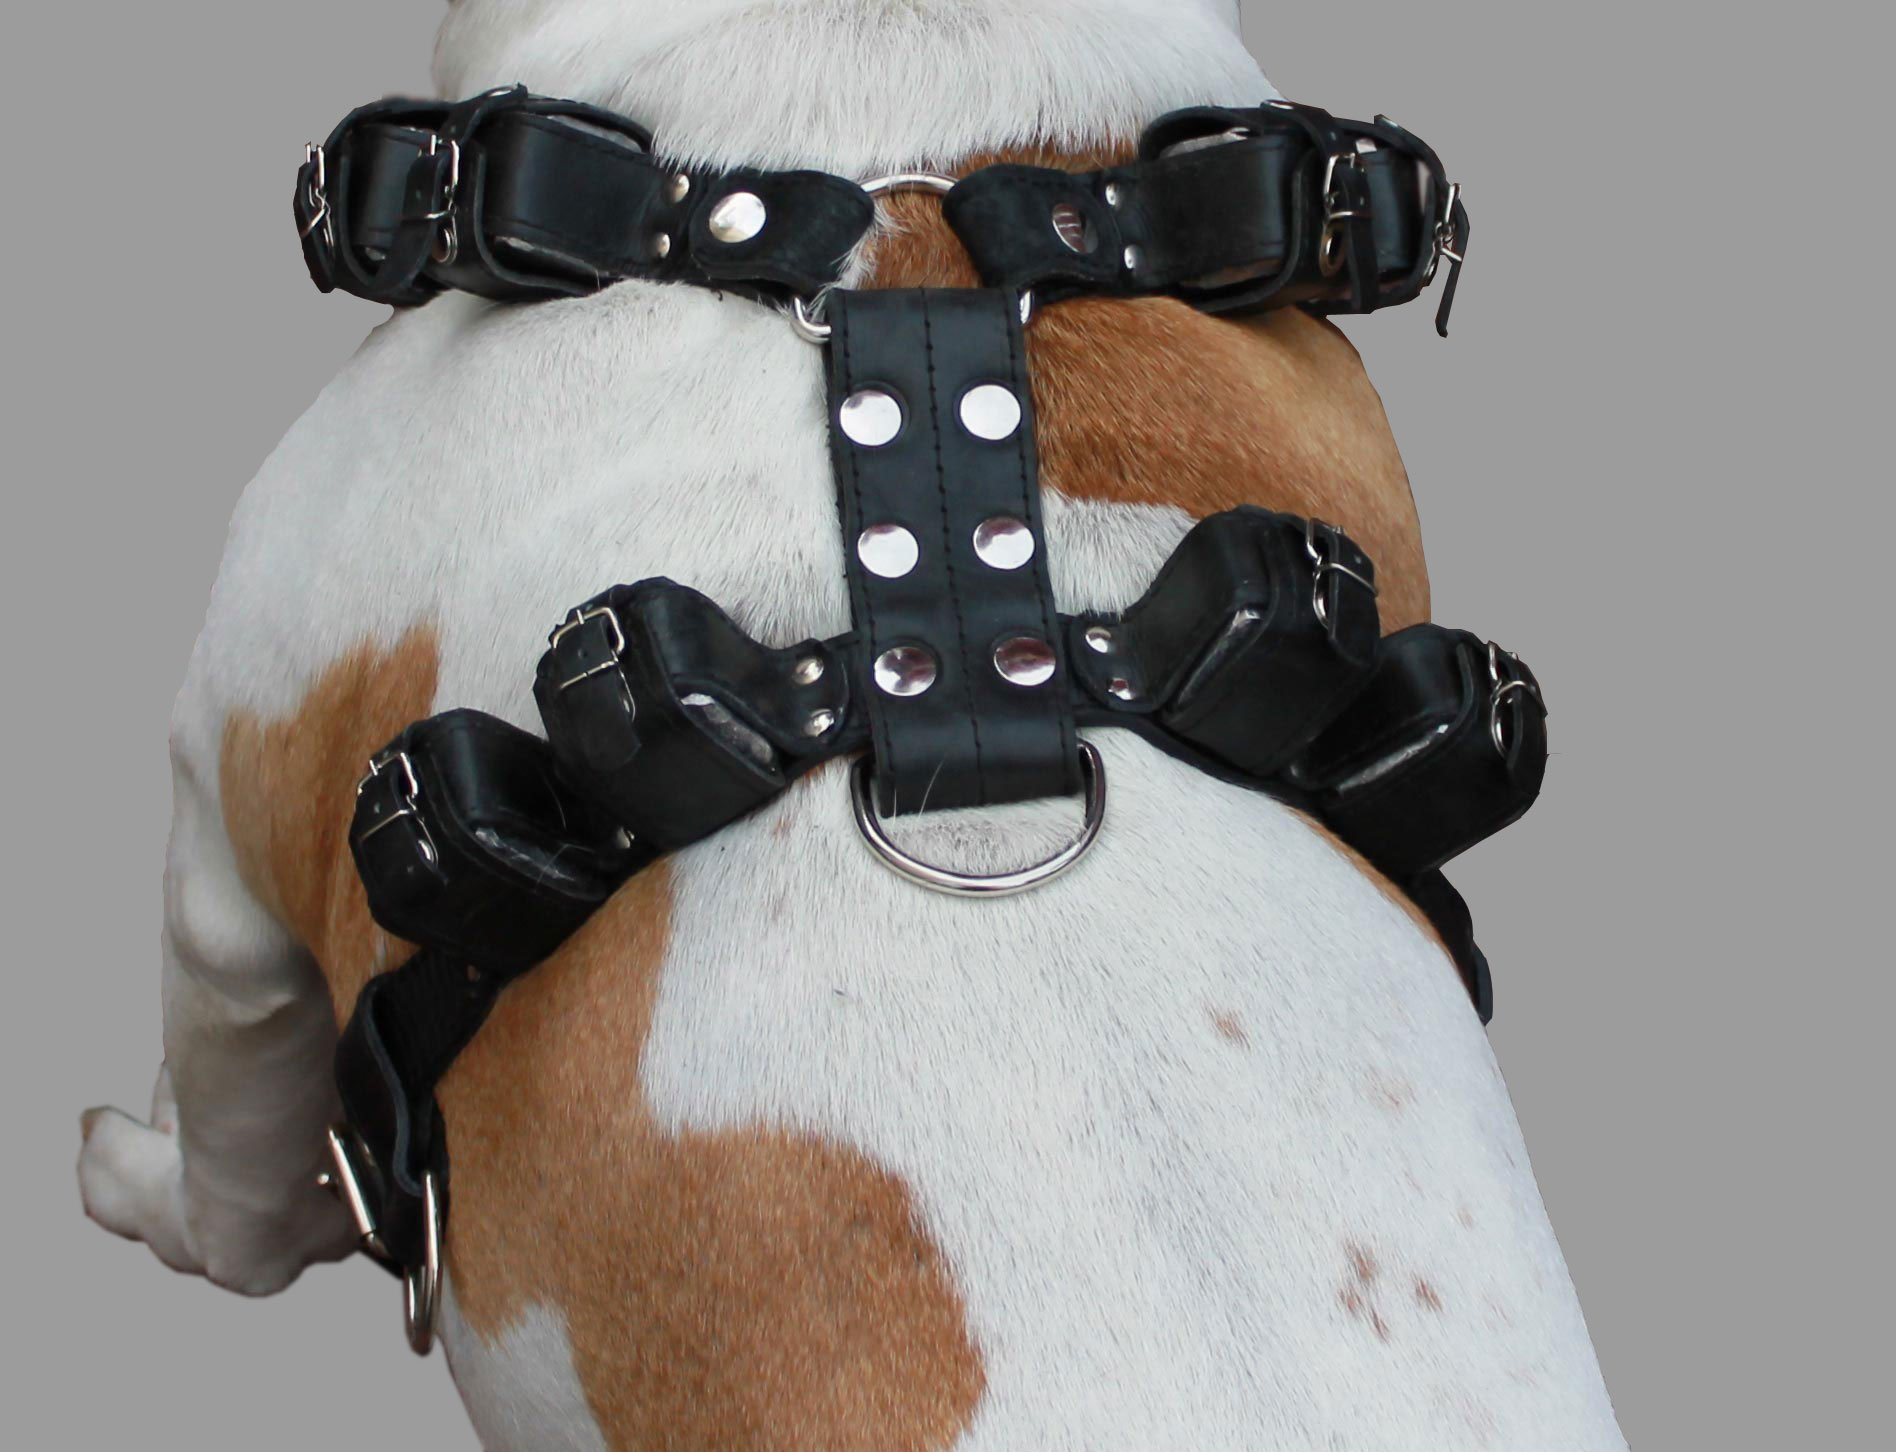 8lbs Black Genuine Leather Weighted Pulling Dog Harness for Exercise and Training. Fits 33''-39'' Chest, by Dogs My Love (Image #2)